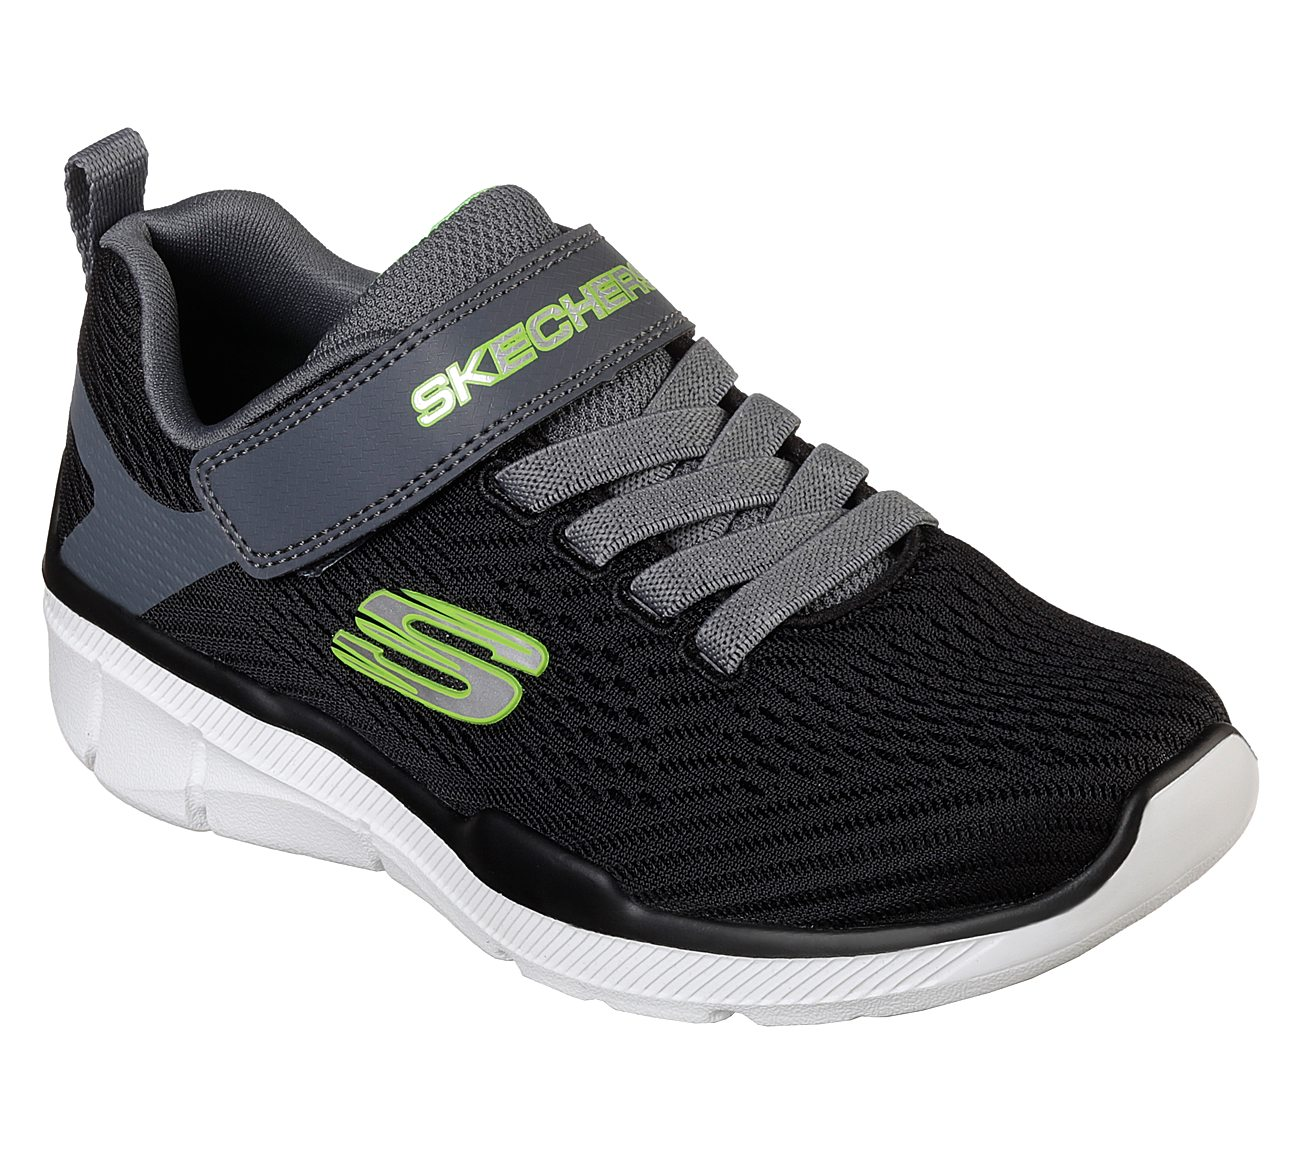 cf4e0a4a6ec3 Buy SKECHERS Relaxed Fit  Equalizer 3.0 - Final Match Relaxed Fit ...